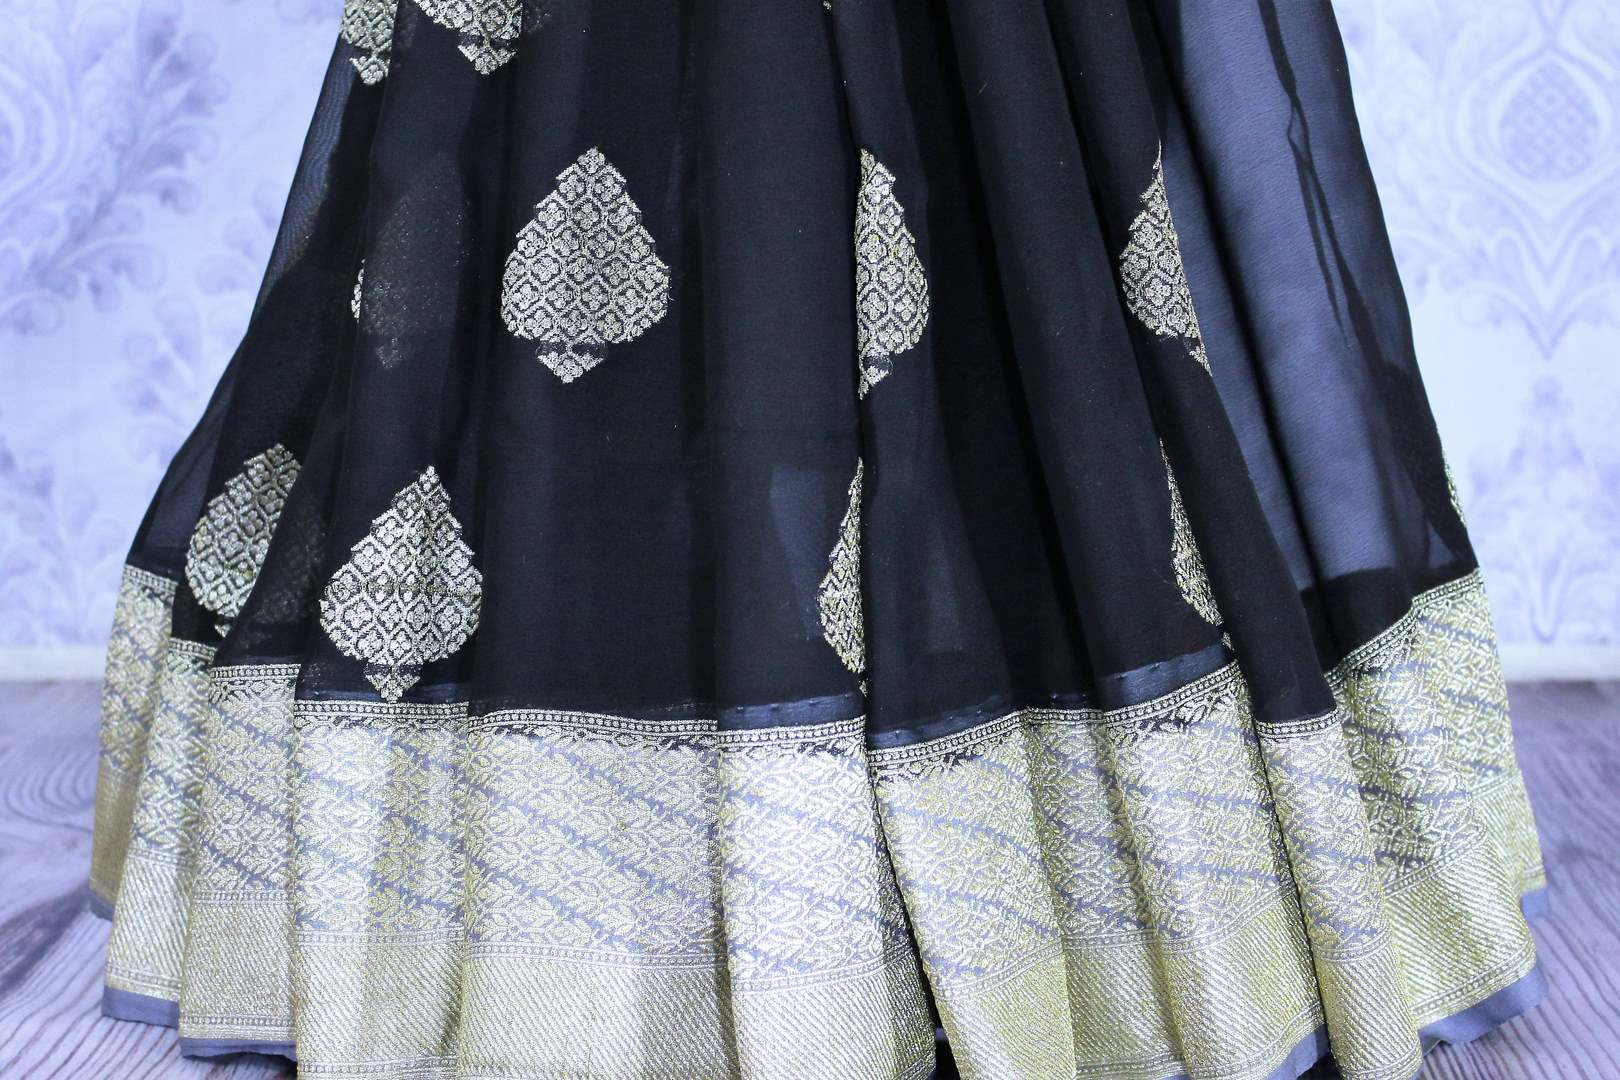 Black georgette Banarasi saree with silver buta for online shopping in USA. The traditional saree is contrasted with a light blue zari border which makes it so captivating. Select from an exquisite collection of traditional Indian Banarasi sarees, designer sarees at Pure Elegance clothing store or shop online.-pleats